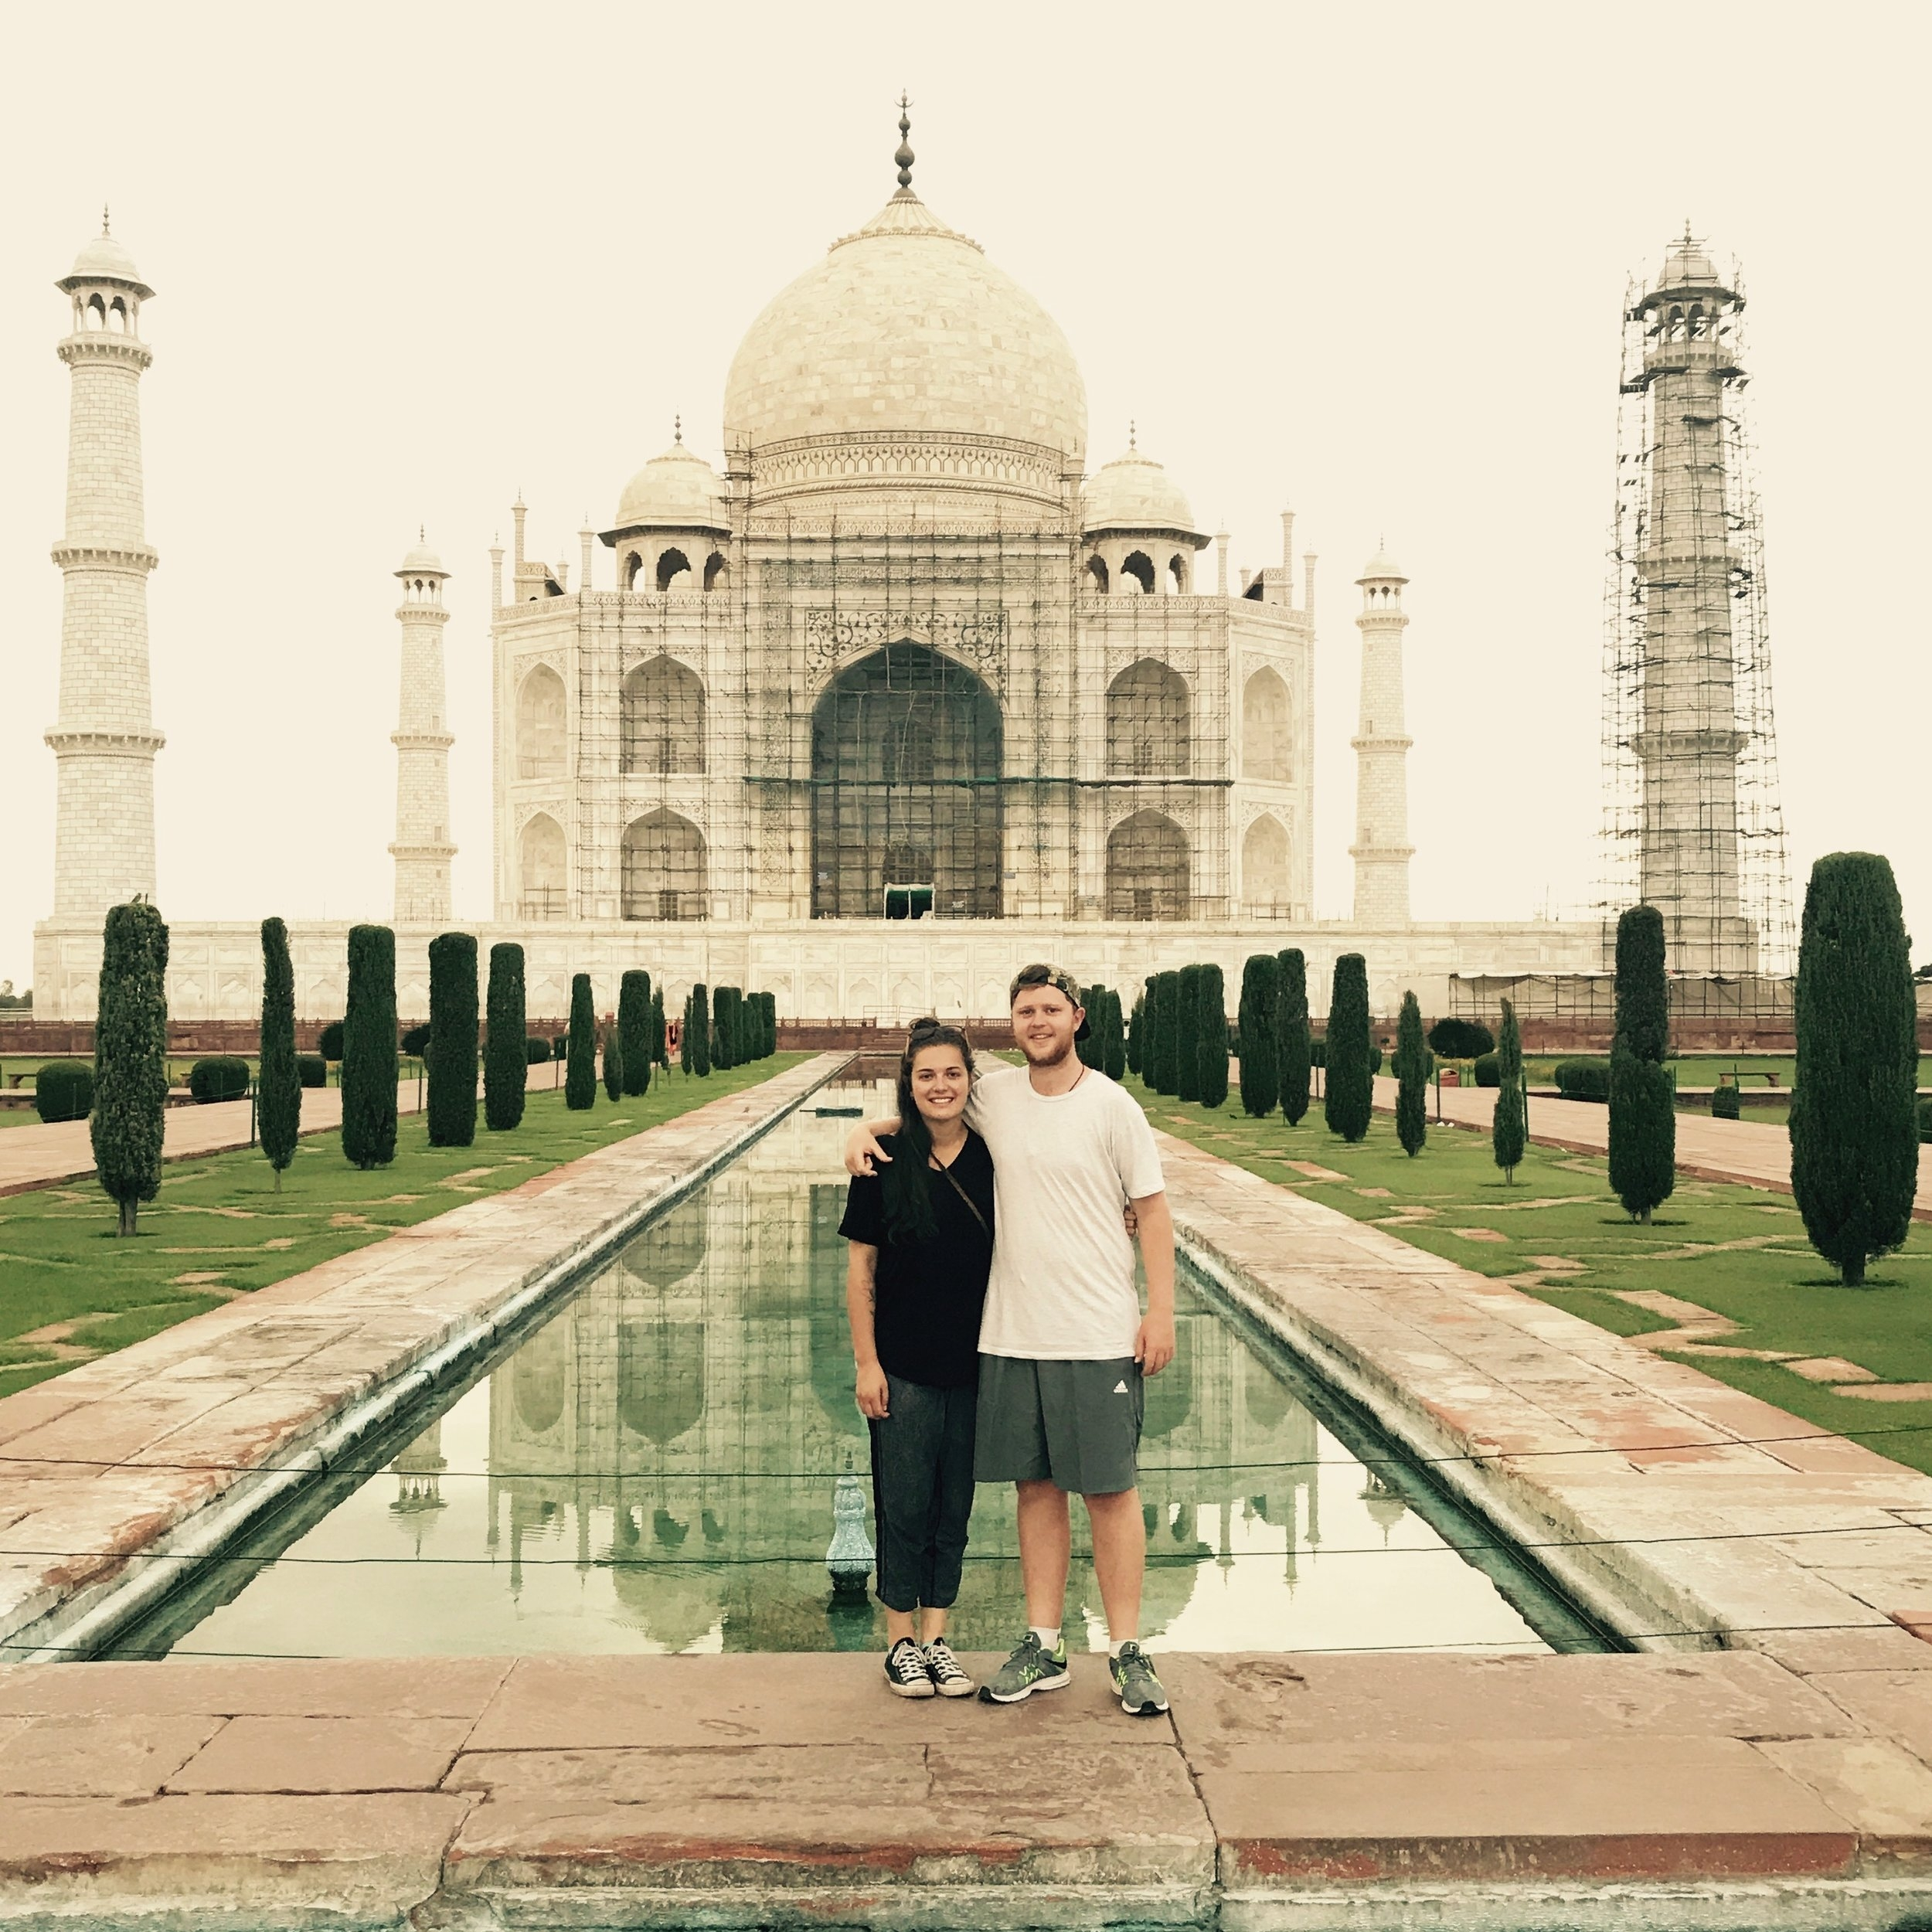 Boy and i in front of the taj mahal, agra